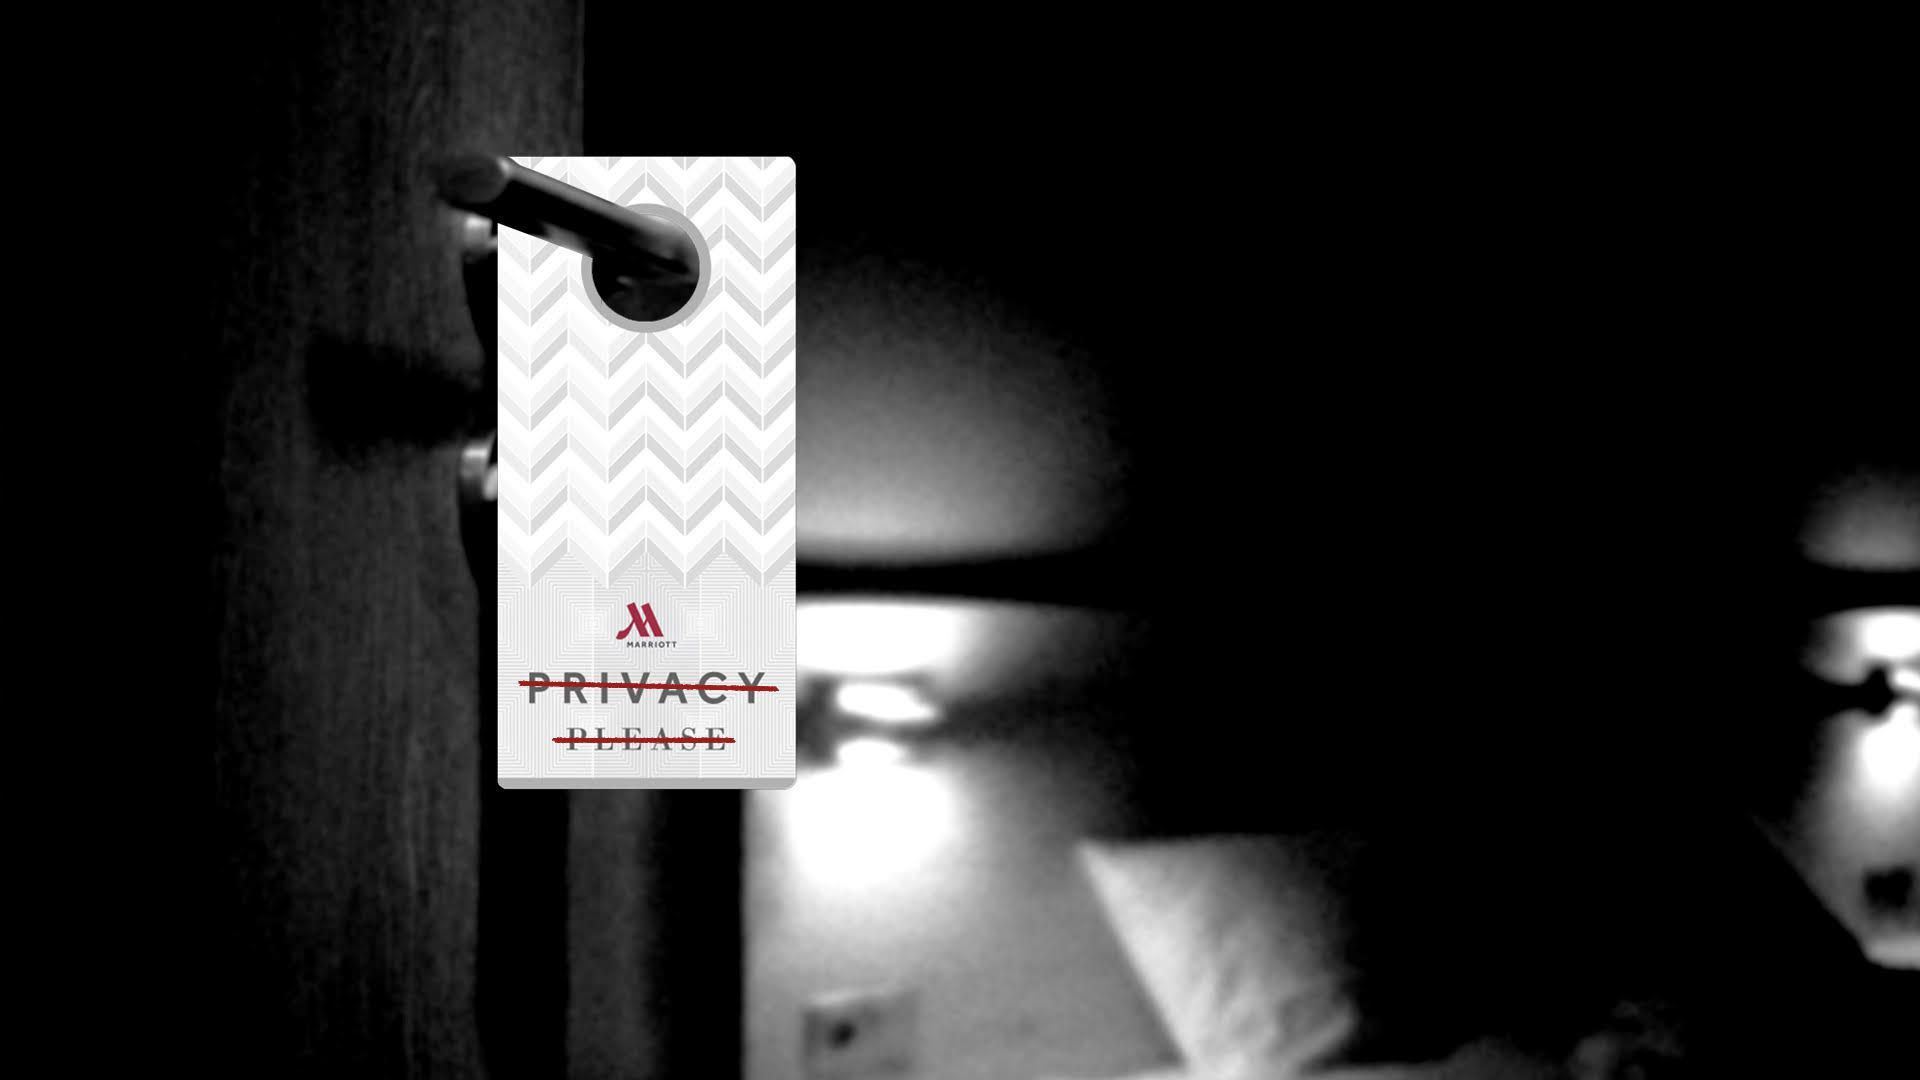 Marriott privacy breach